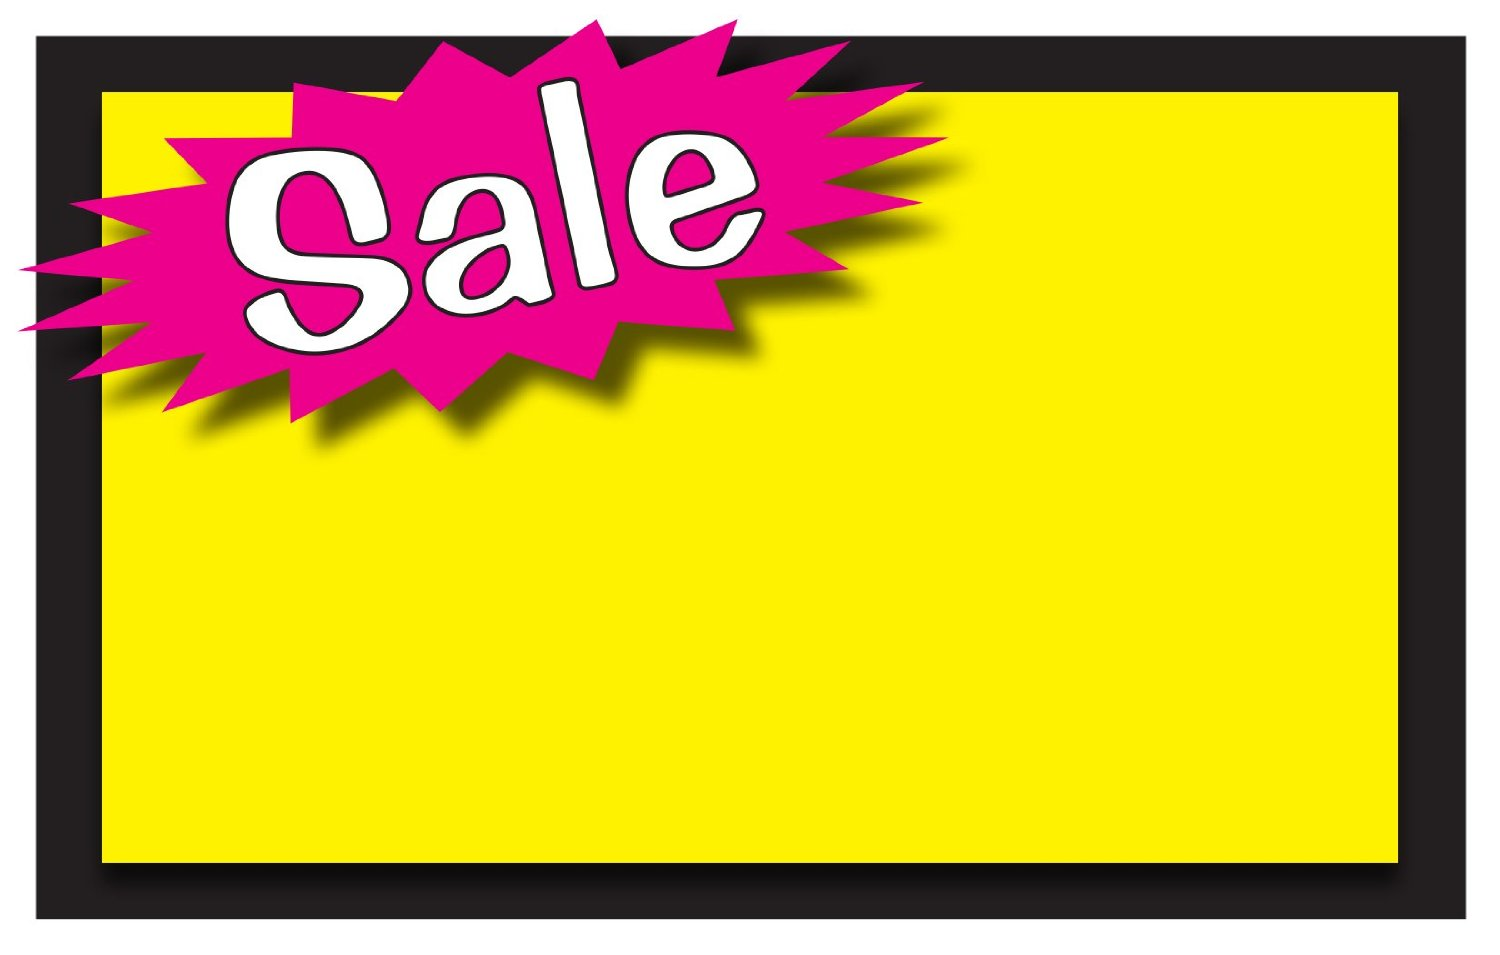 image relating to Printable Sale Sign titled Affordable Totally free Printable Sale Indications For Retail, uncover No cost